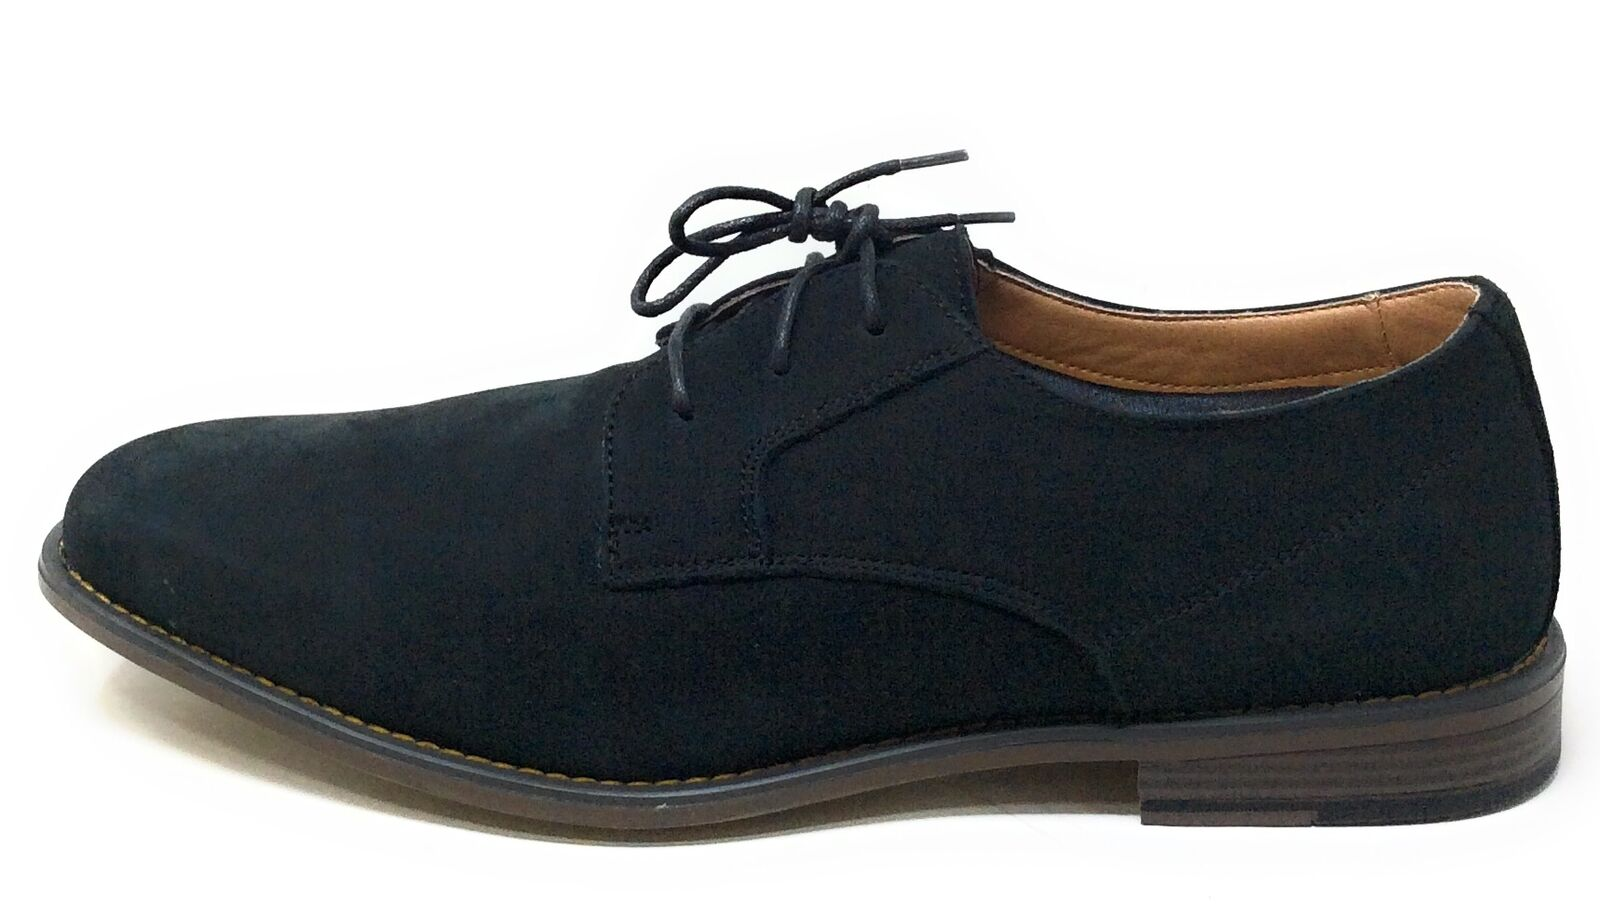 J75 By Jump Mens Griffin Lace Up Oxford Shoes Black Leather Size 13 M US